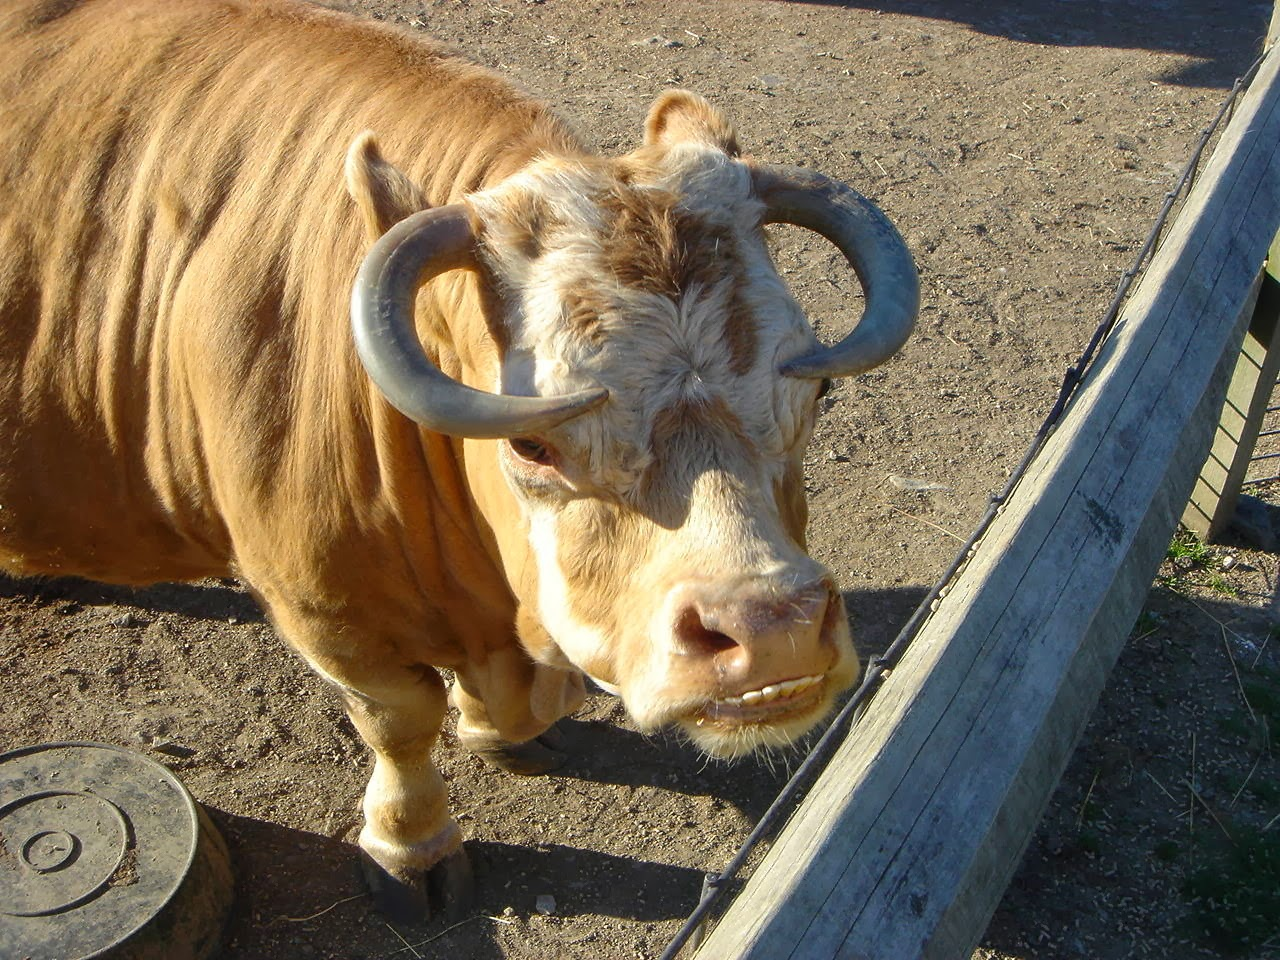 Funny animals of the week - 14 February 2014 (40 pics), cow with underbite